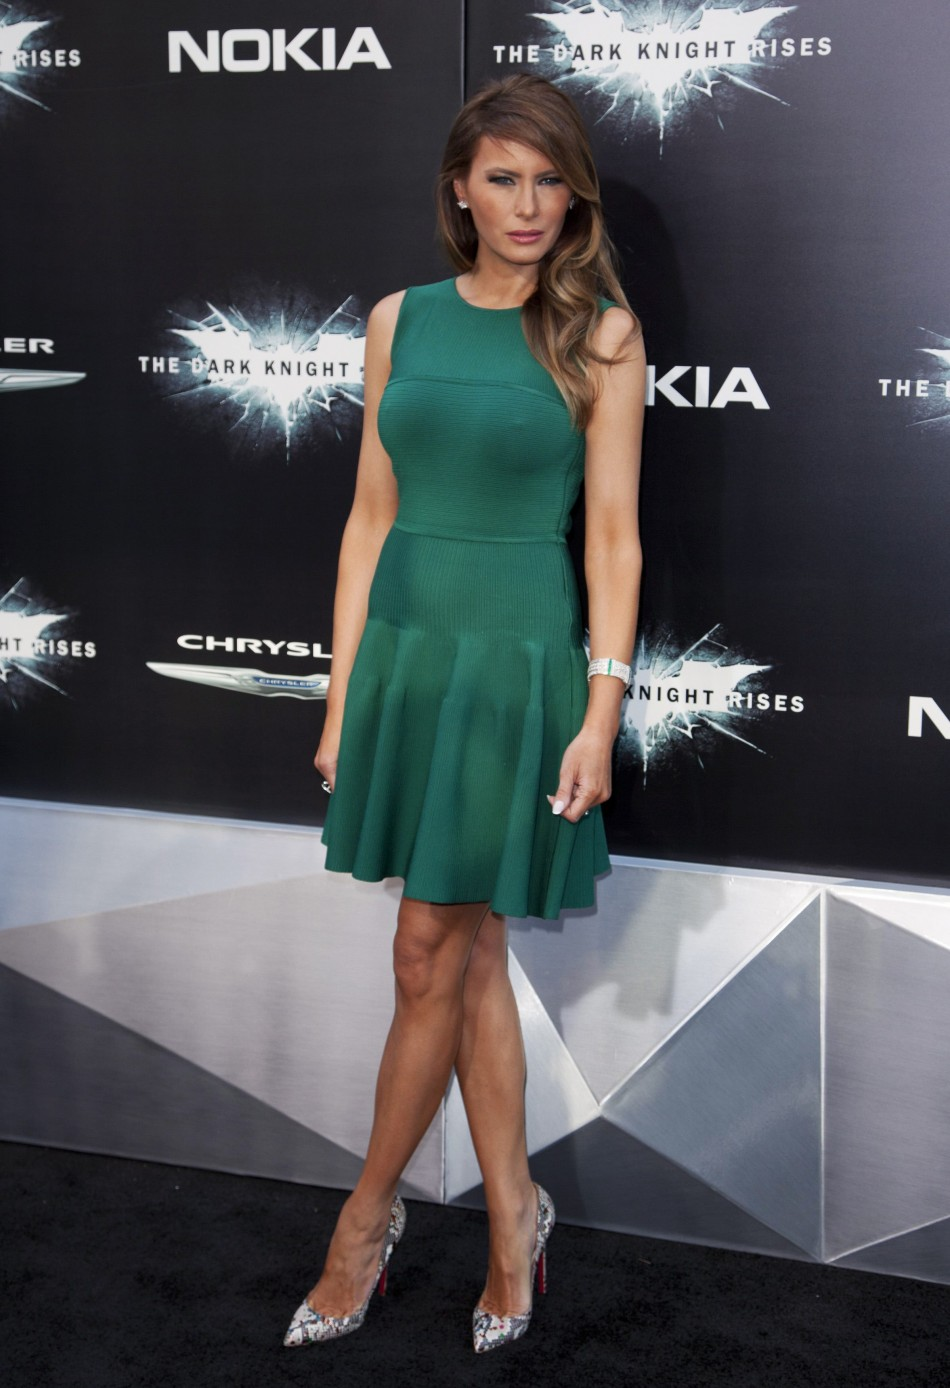 Melania Trump attends the world premiere of the movie quotThe Dark Knight Risesquot in New York